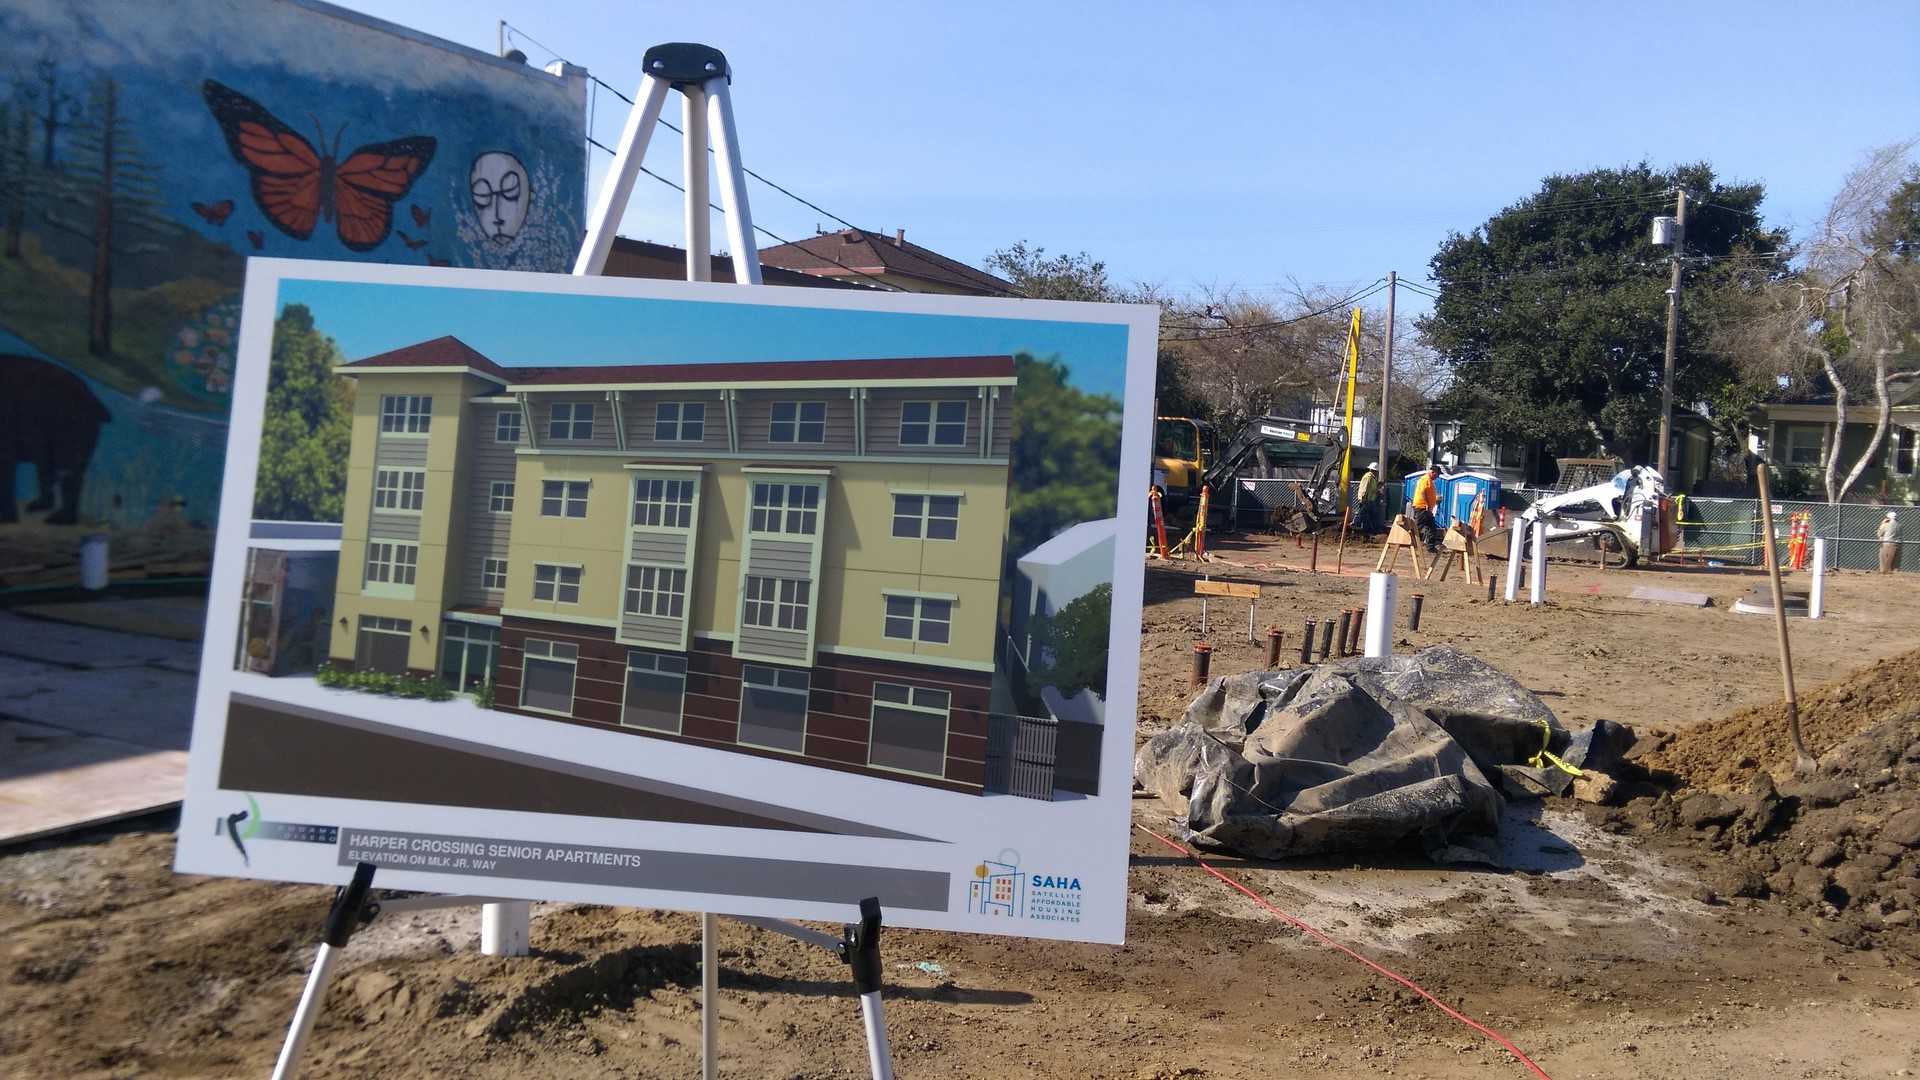 A sign shows the design for Harper Crossing, a new affordable housing structure for seniors near the Ashby BART station.